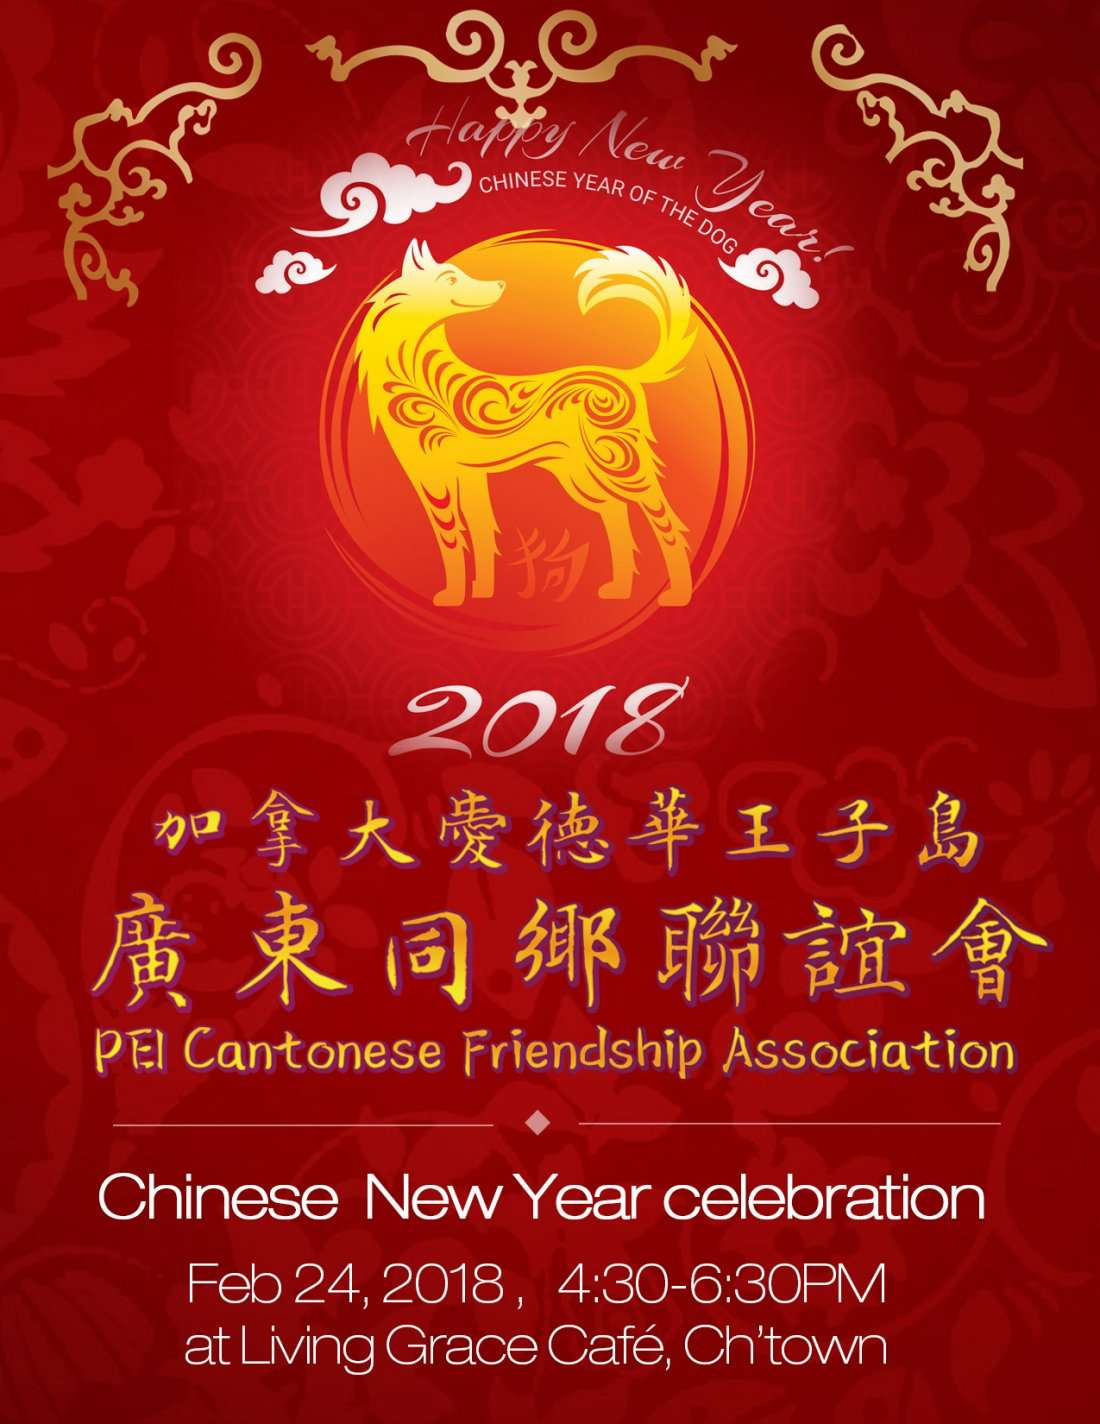 Annual PEI Cantonese Friendship Association Chinese New Year Party ...